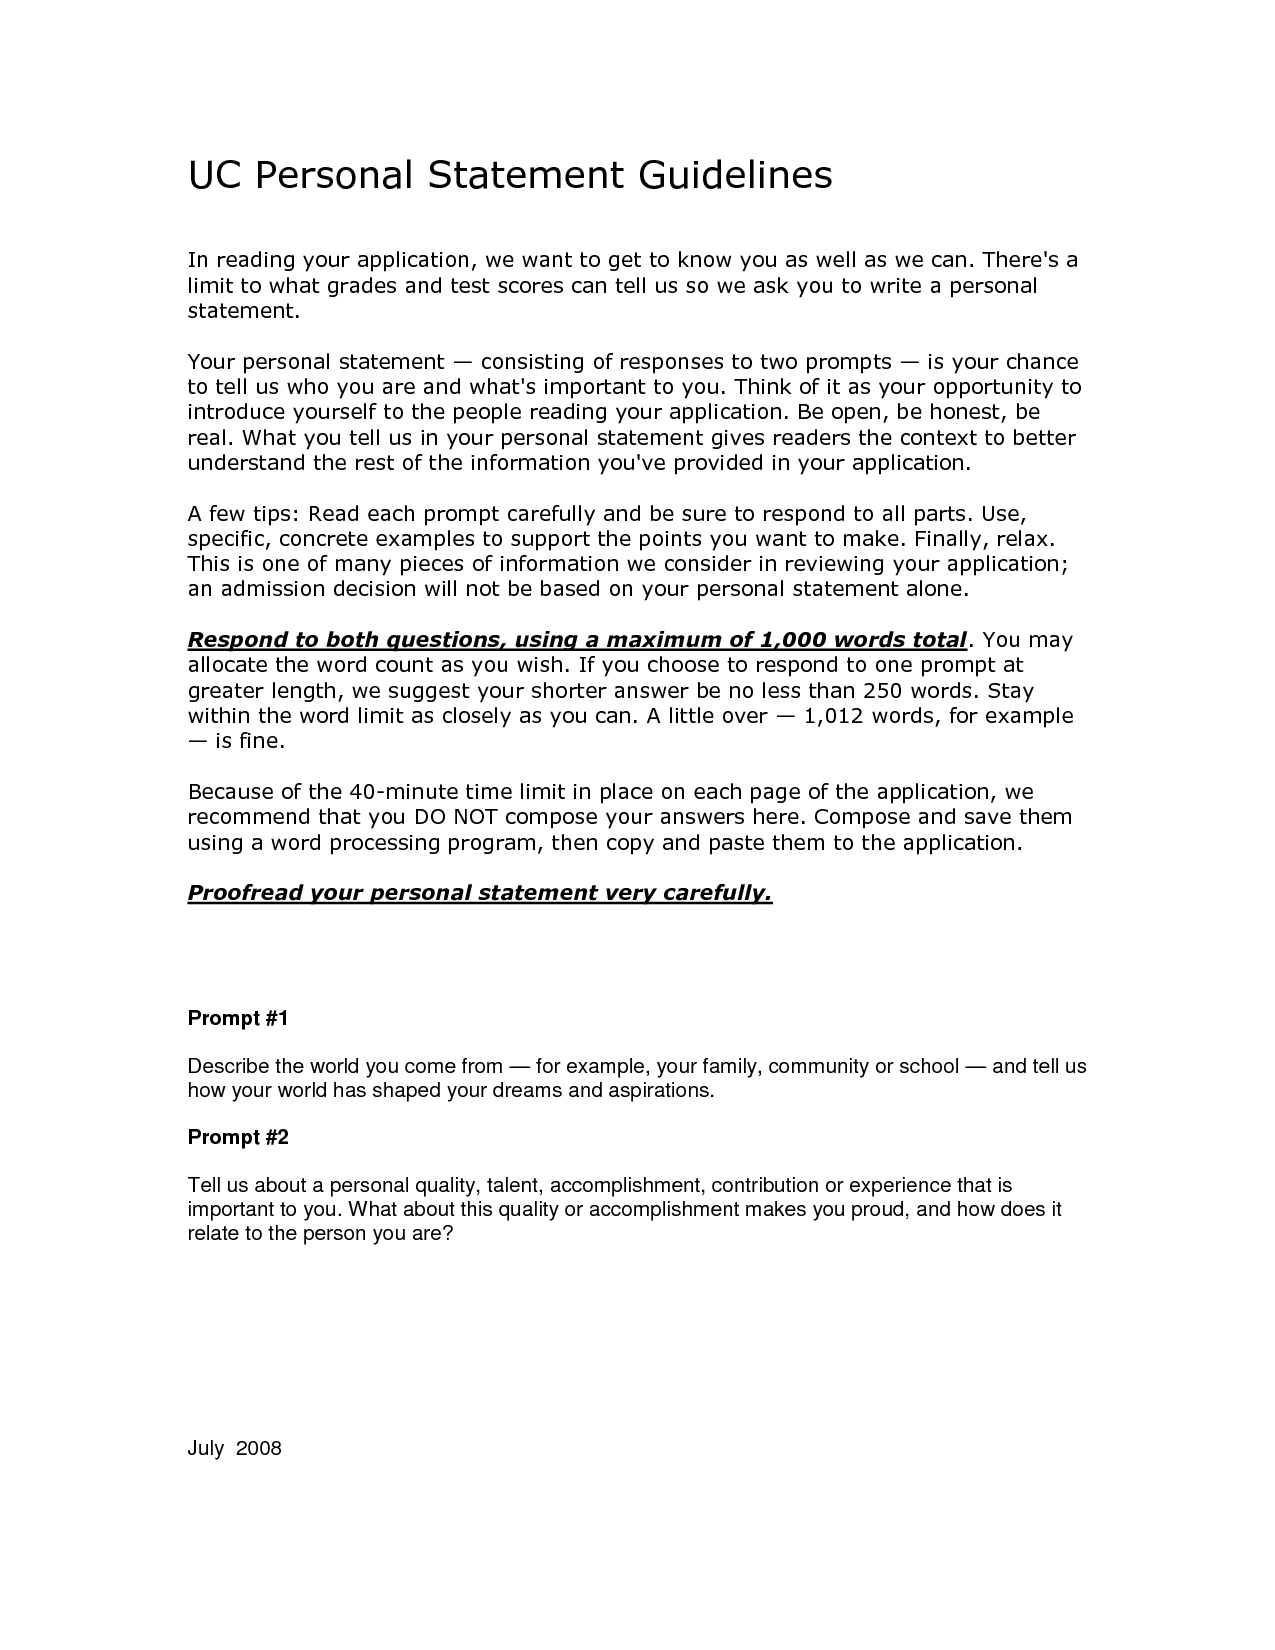 005 Uc Application Essay Examples Personal Statement College Admission Prompts Of Statements Template Cm3 App Prompt Ucf Texas Admissions Example Frightening Essays Transfer 2017 Collegevine Full